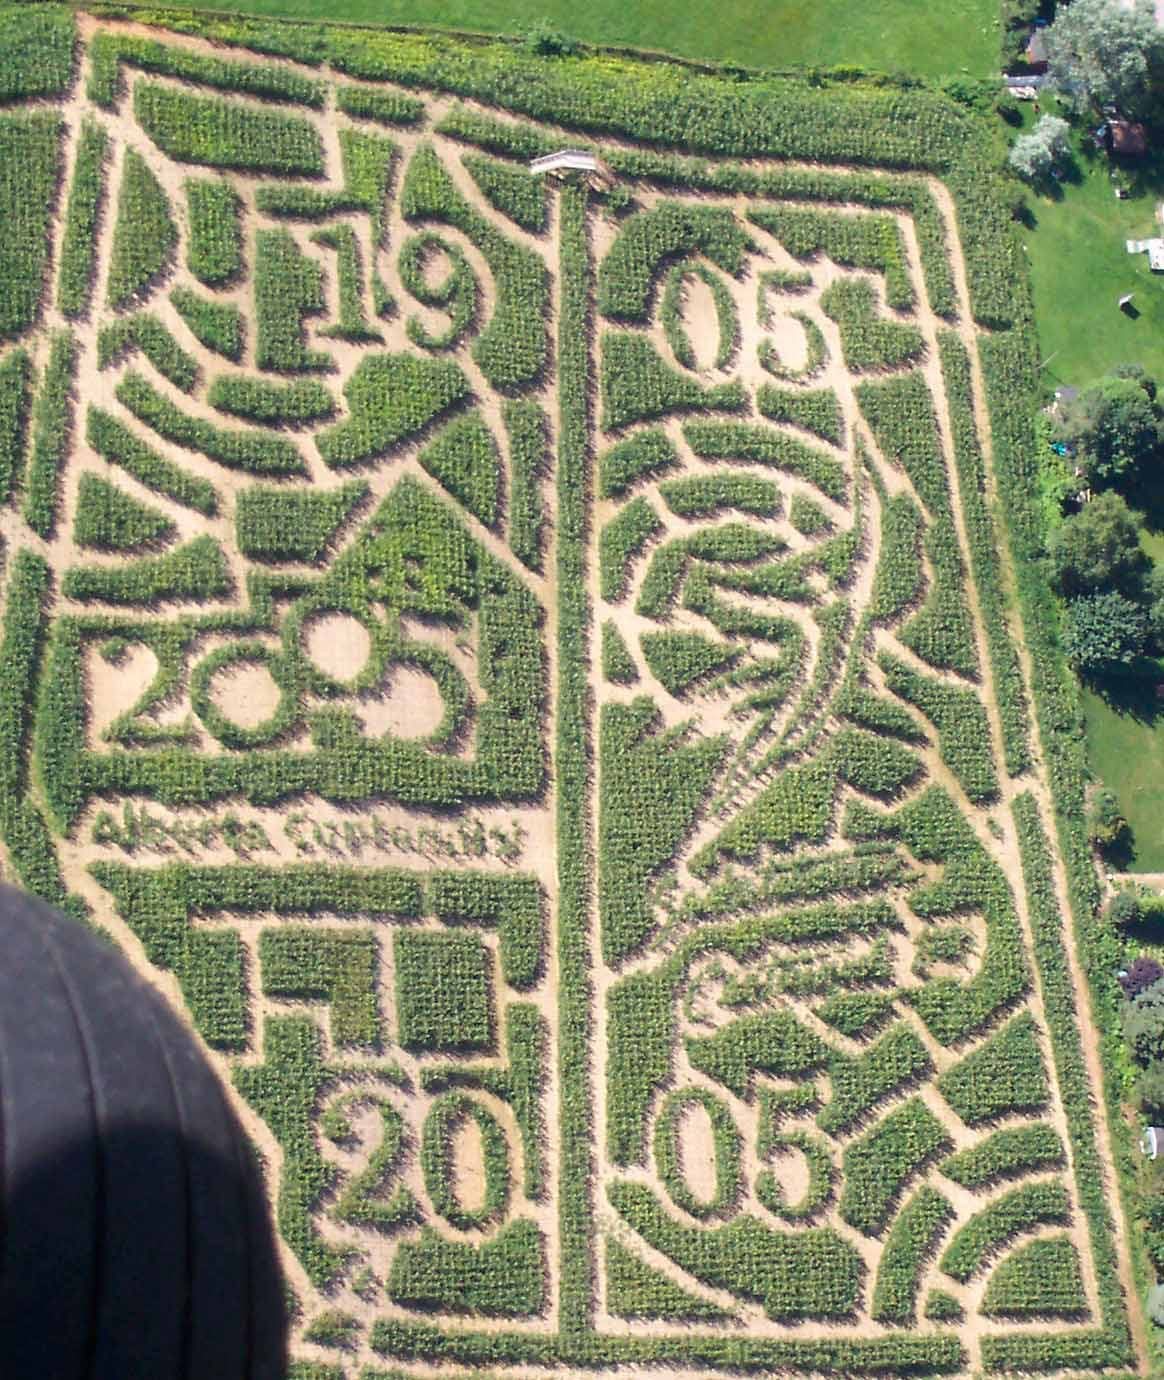 2005: Alberta and Saskatchewan Centennial  Our 2005 maze was a tribute to the Alberta and Saskatchewan's Centennial Year featuring the outline of both provinces and their Centennial logo in the middle of each province. It was our most elaborate undertaking yet requiring over 2200 connect-the-dot coordinates.